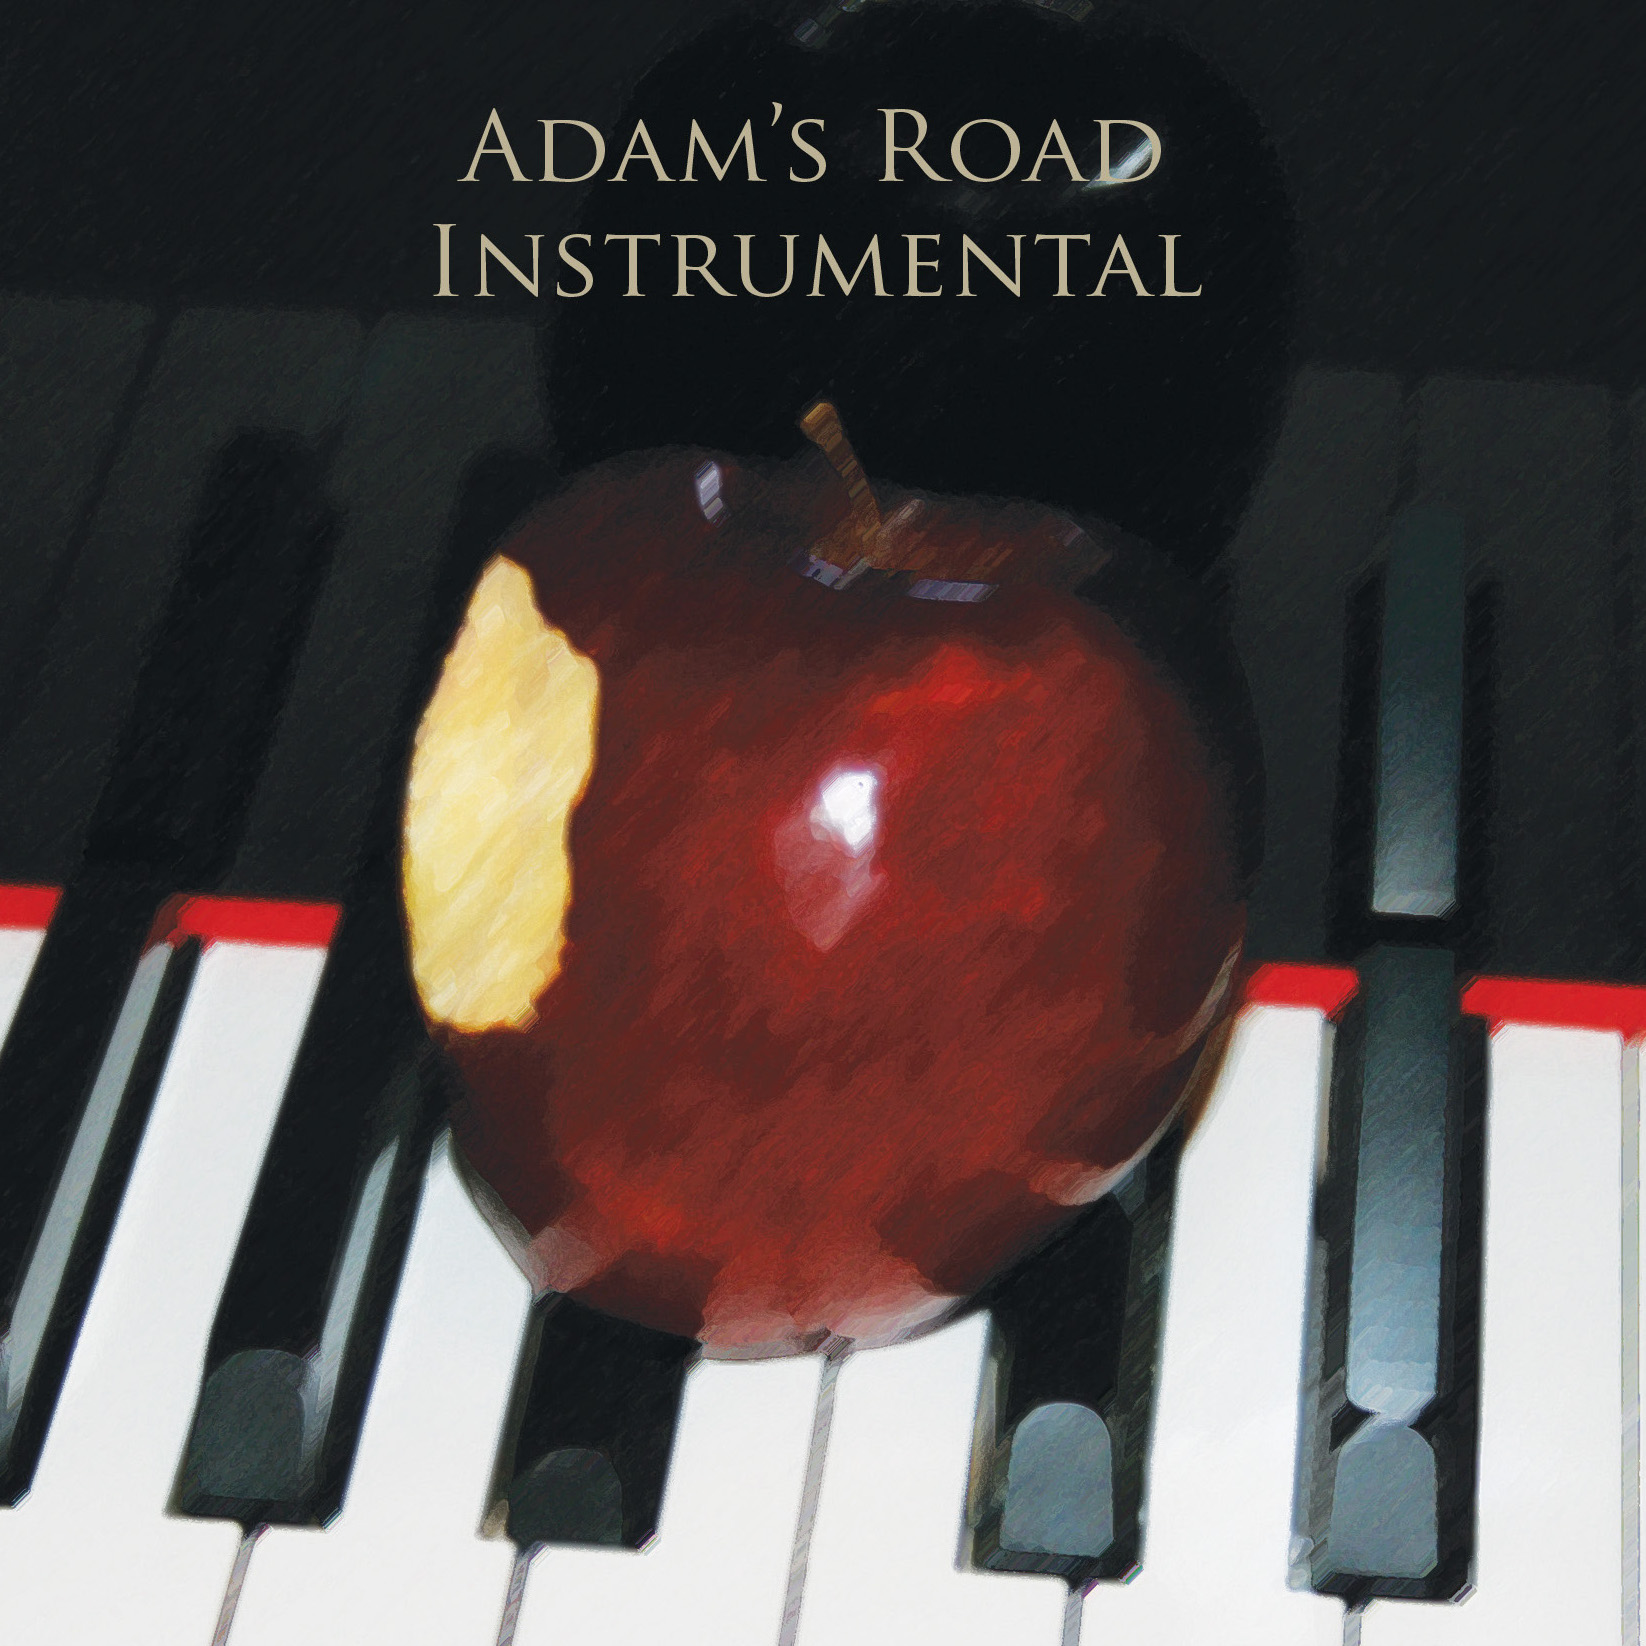 Adam's Road Instrumental